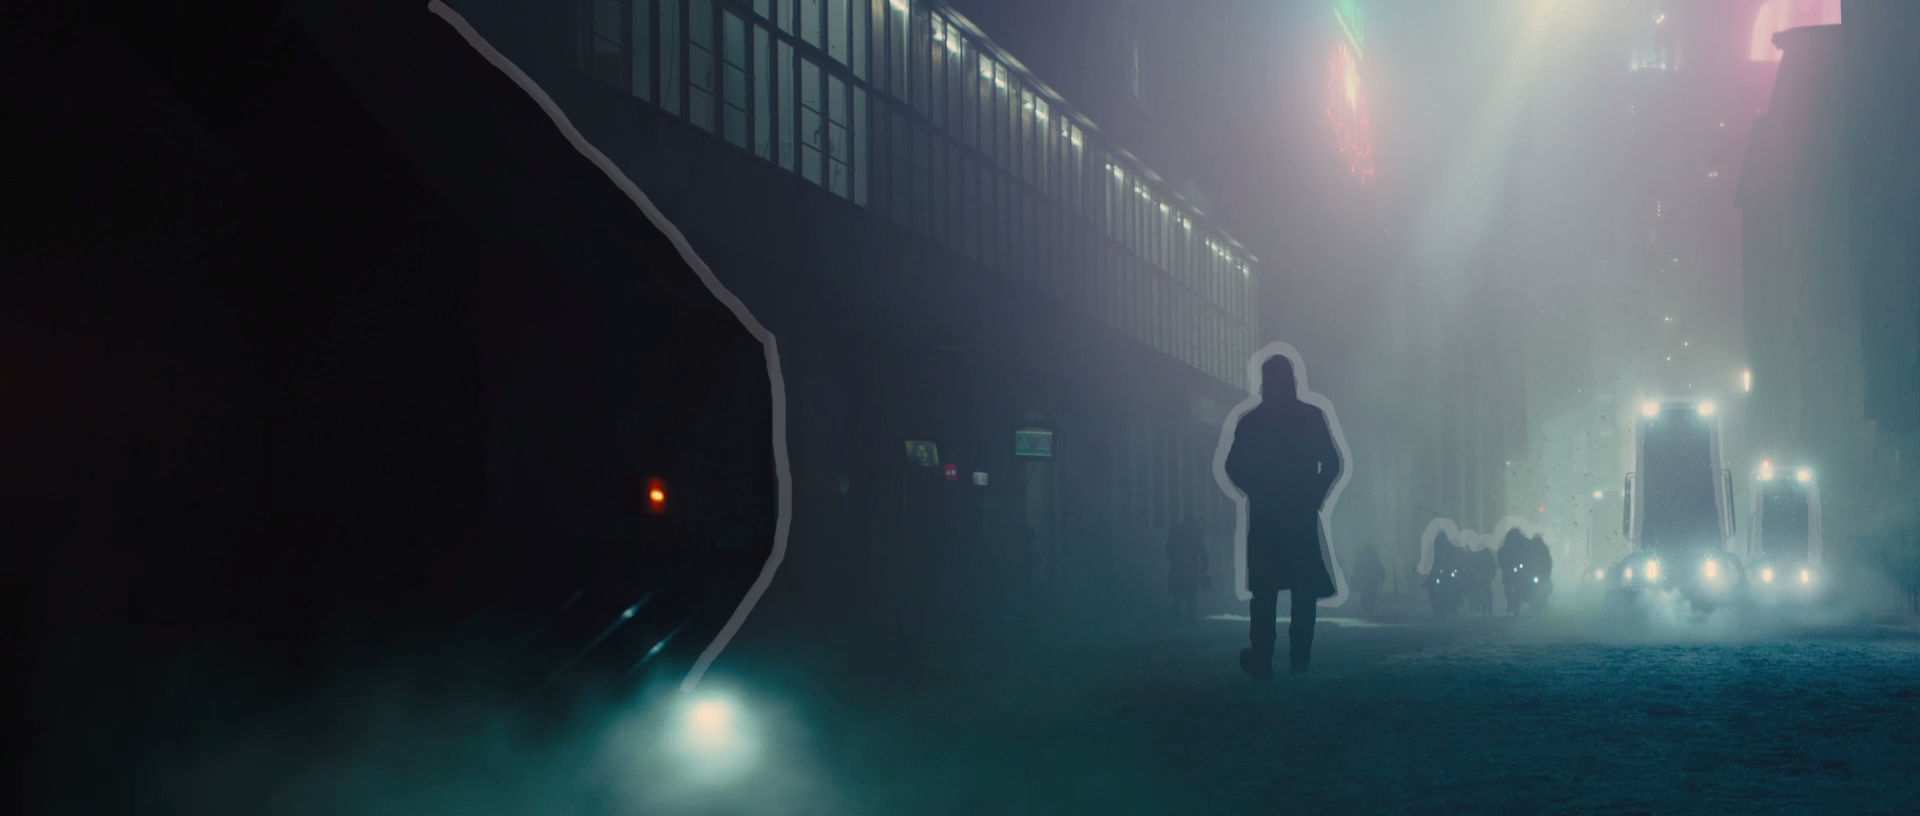 BD2049_silhouette_case_1.png